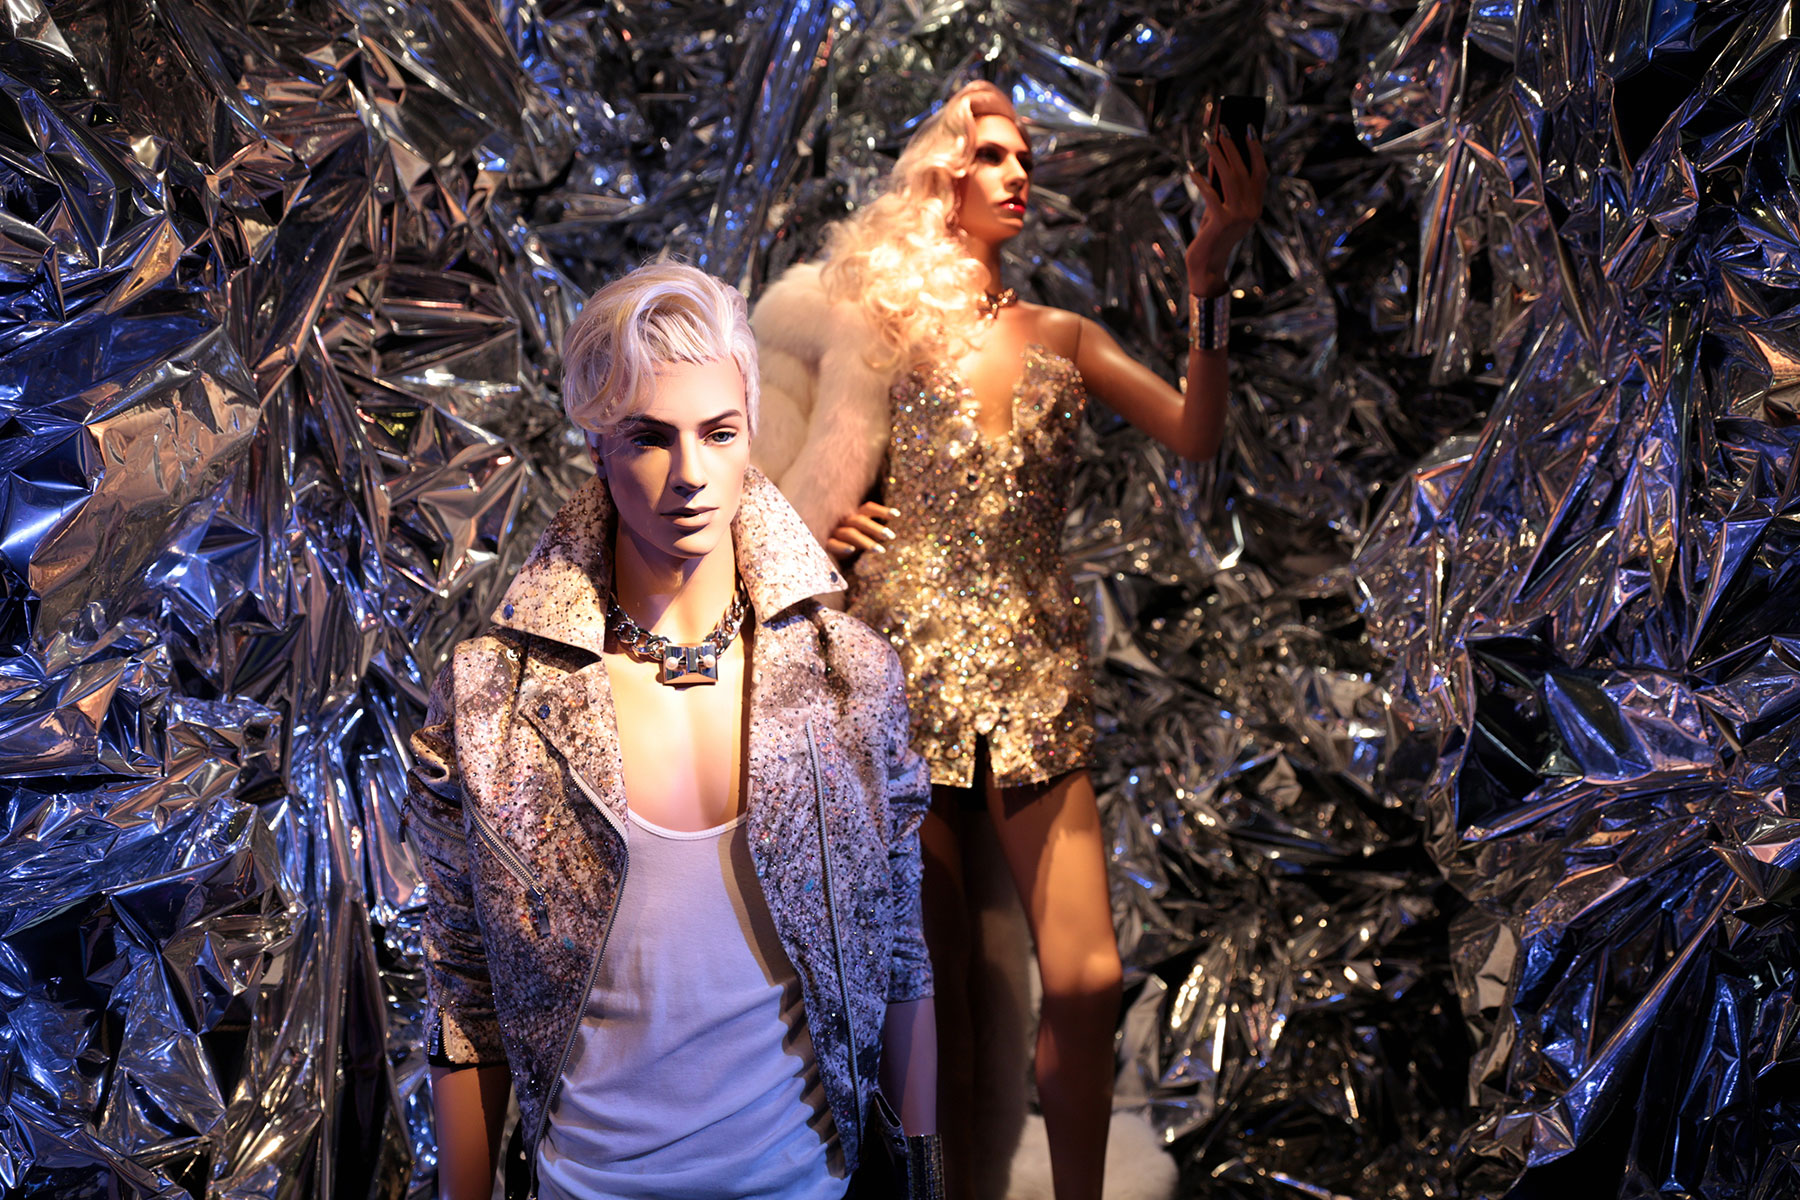 Phillipe Blond in The Blonds Collections - The Retrospective